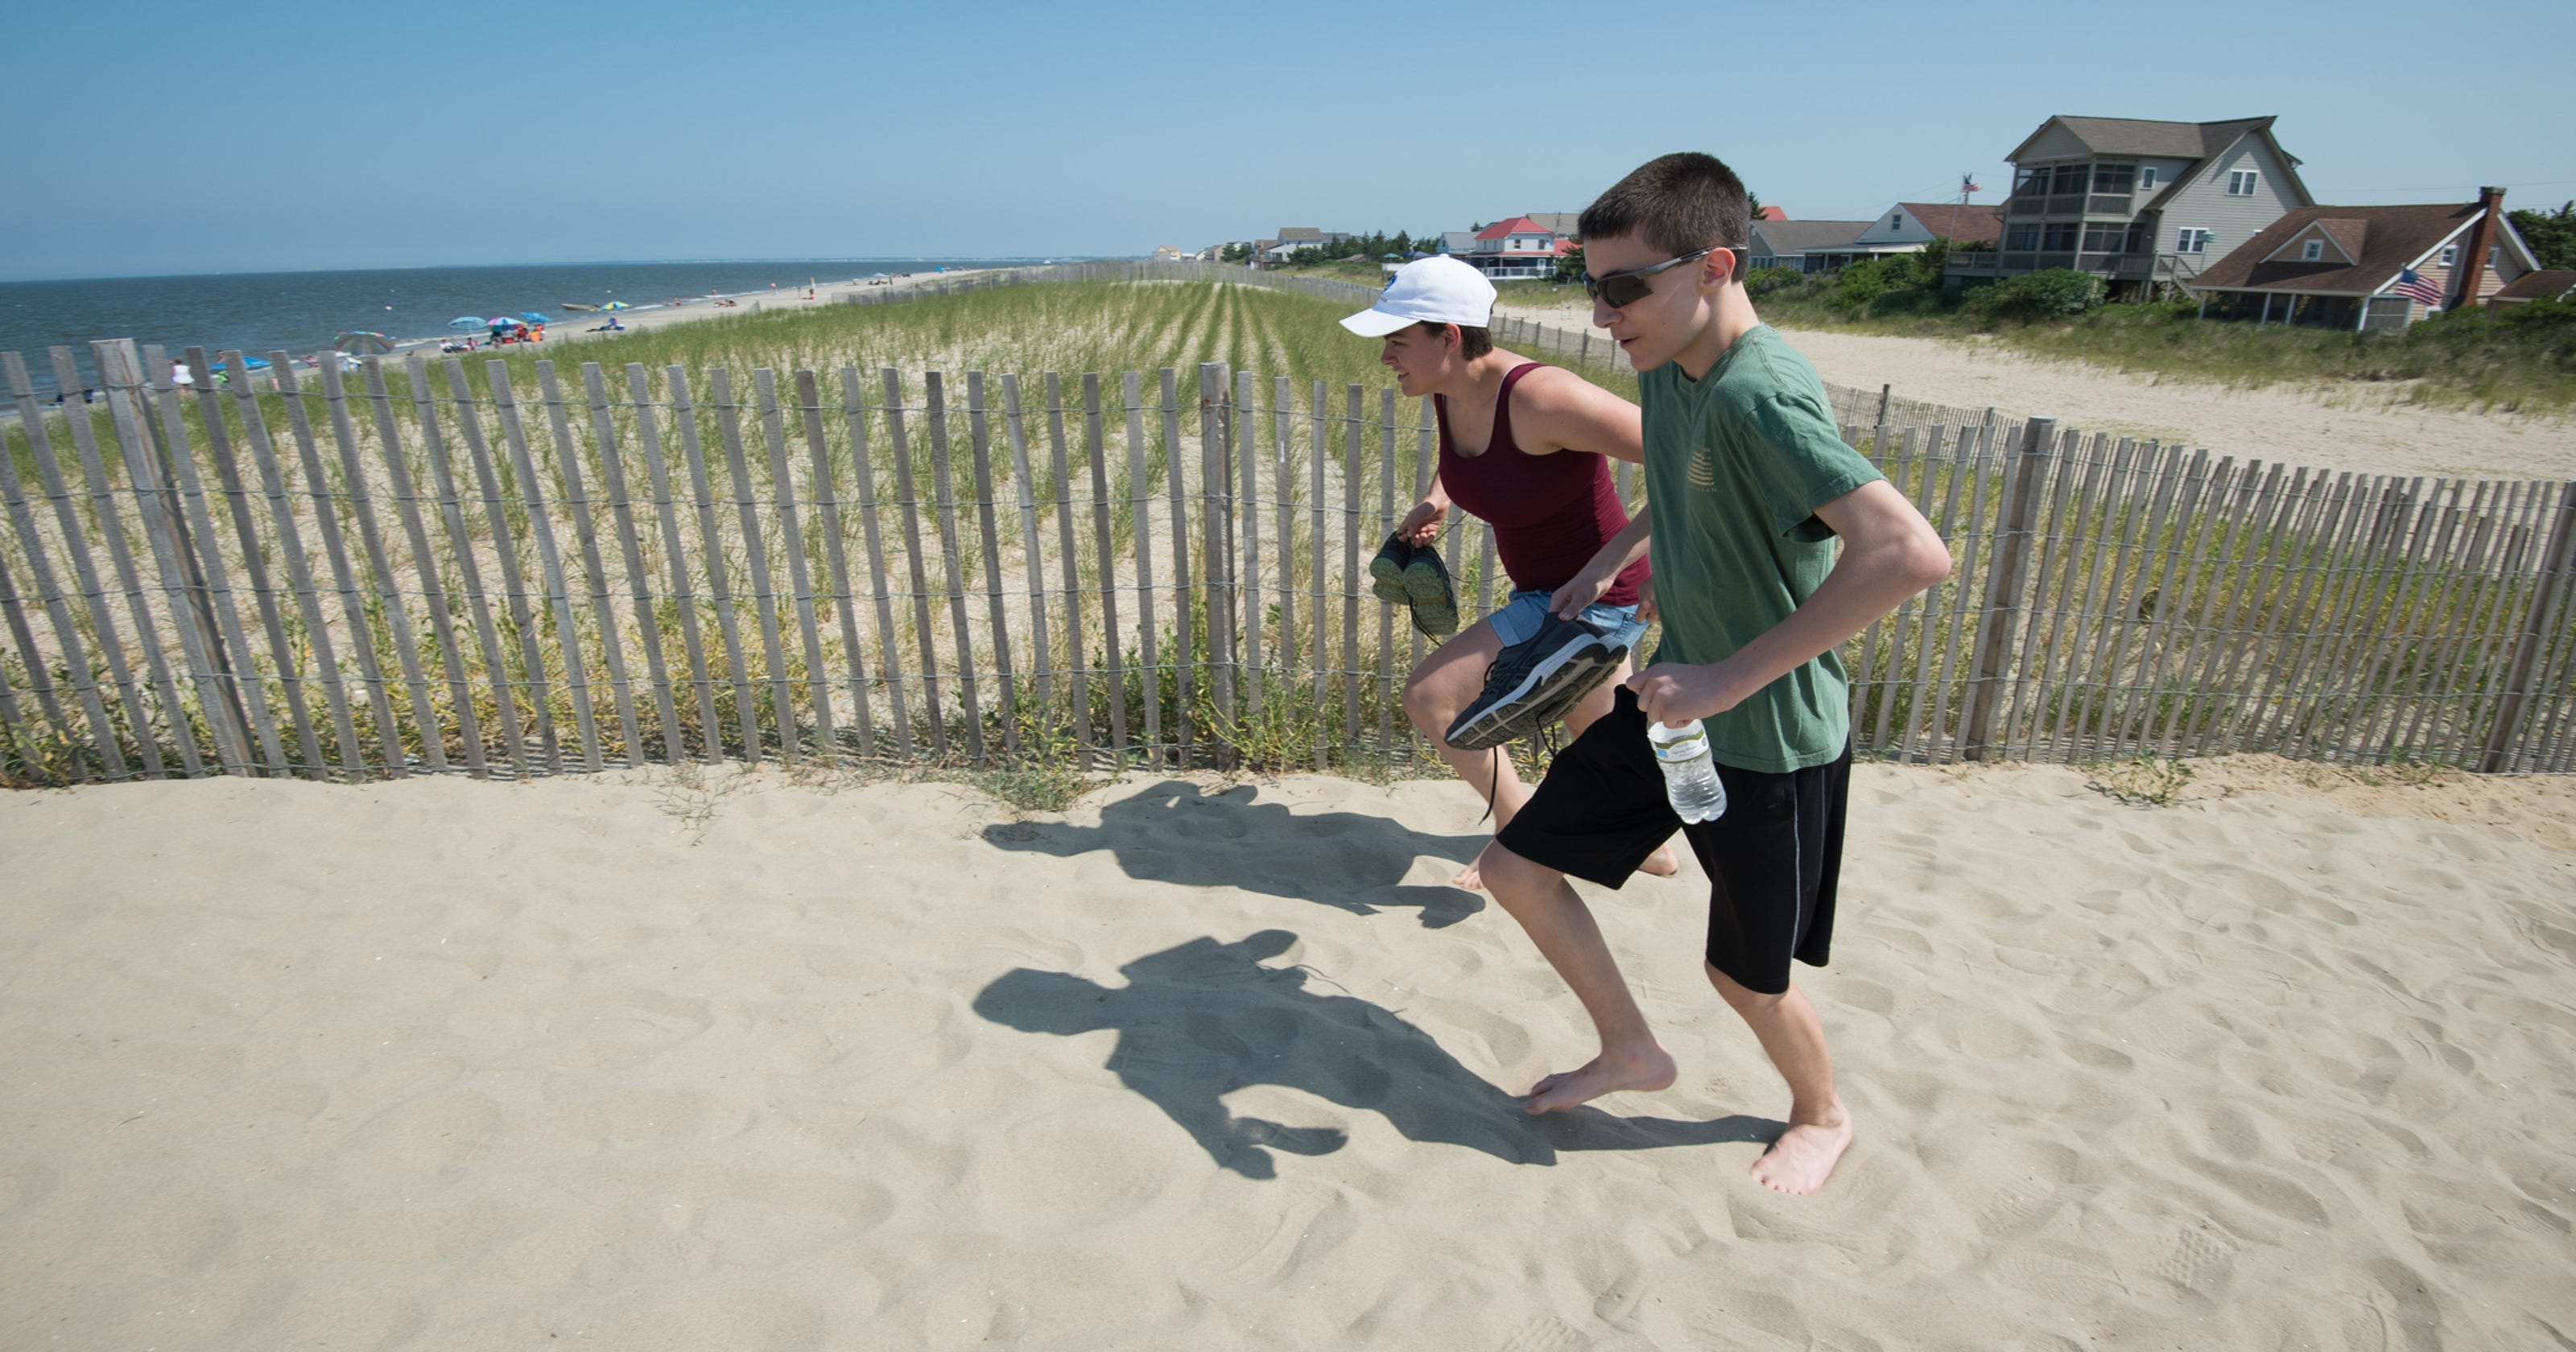 Sandtastic Delawares Mineral Rich Beaches Absorb The Heat To Burn